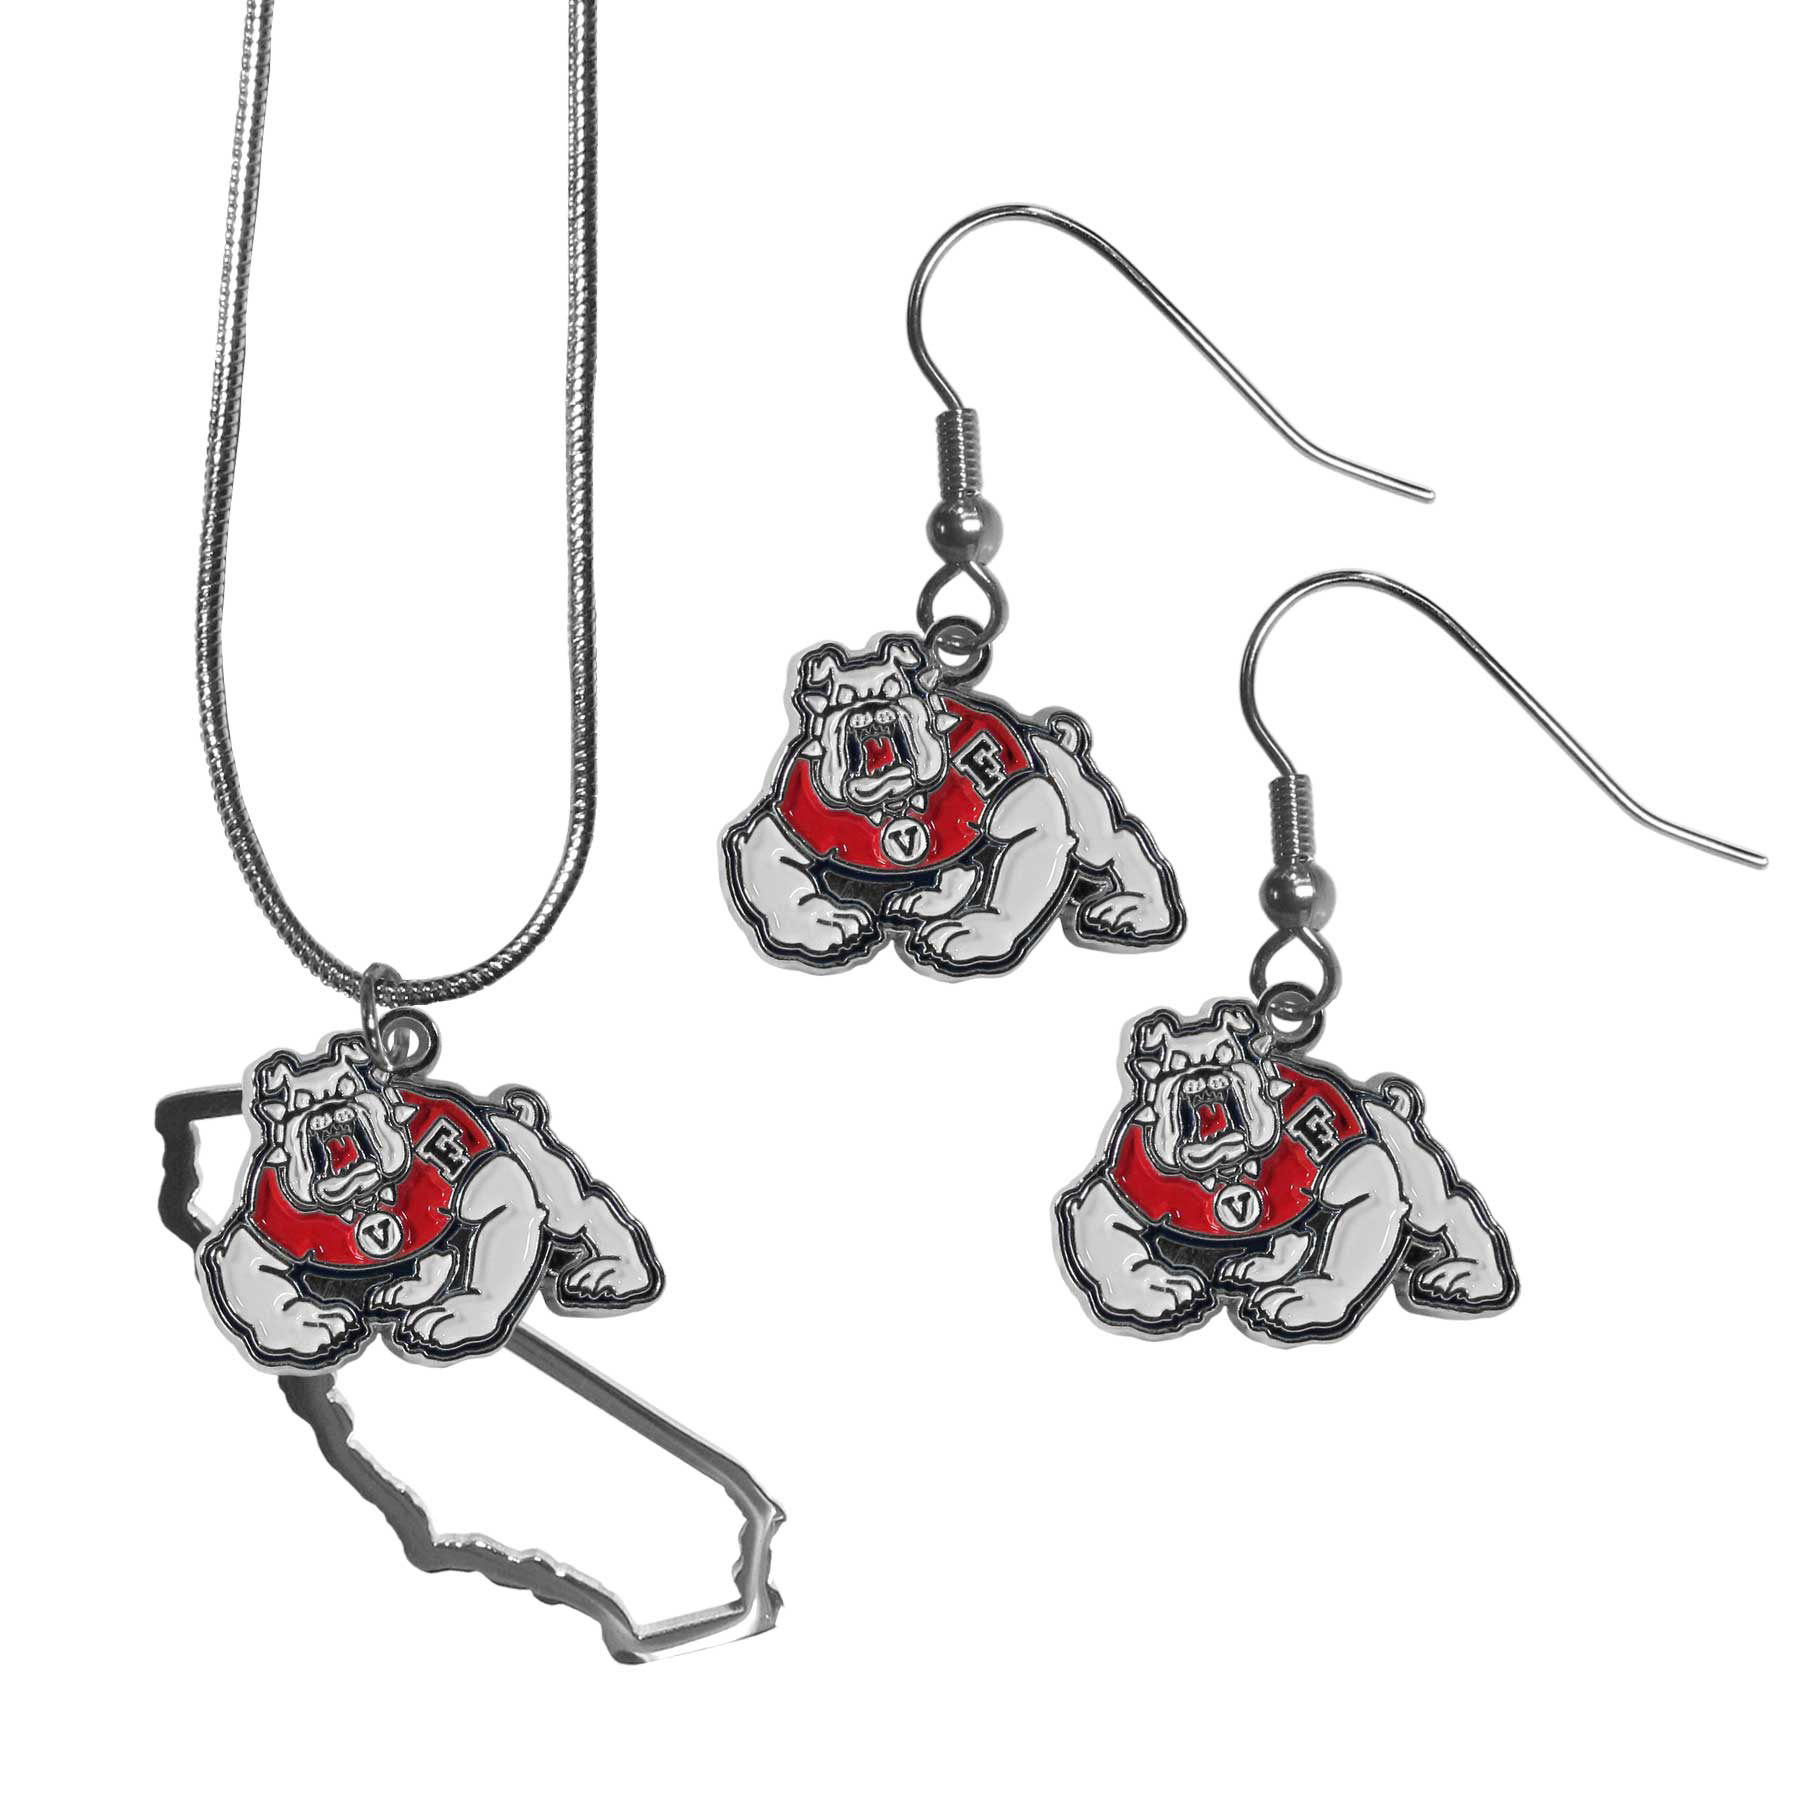 Fresno St. Bulldogs Dangle Earrings and State Necklace Set - Get in on the trend! State themes are a trend that just keeps getting more popular and this jewelry set takes the state style and give it a sporty twist with a Fresno St. Bulldogs necklace that features an Arizona state outline charm paired with a beautiful team charm and matching team charm dangle earrings. The earrings feature hypoallergenic fishhook posts that are nickel free.